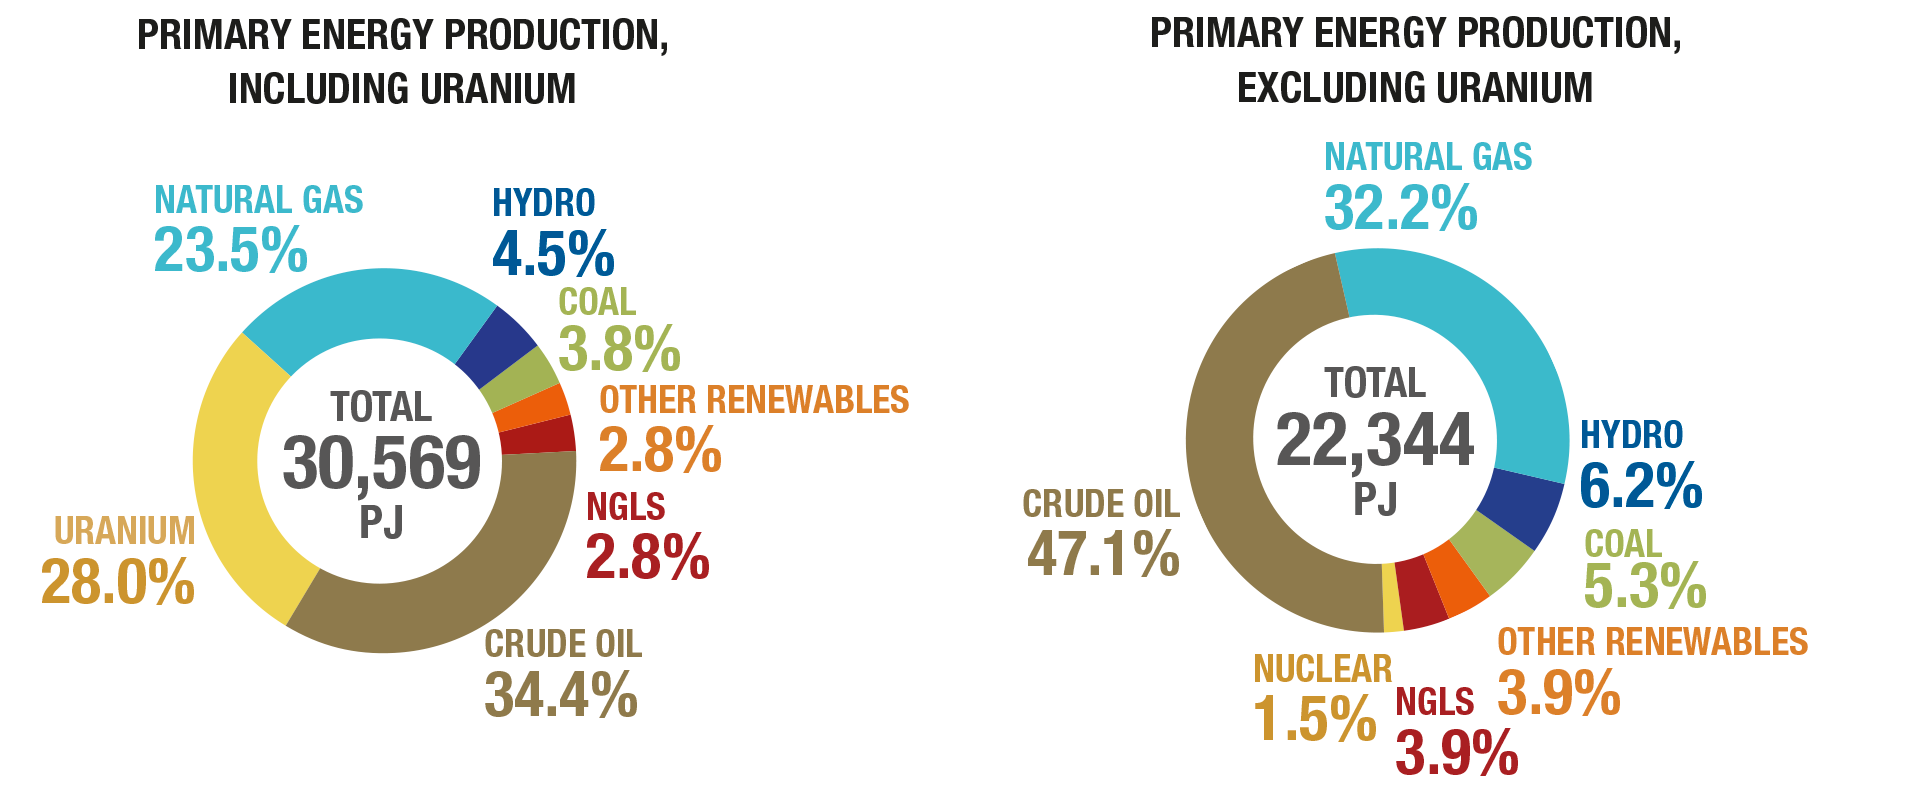 Primary energy production including uranium